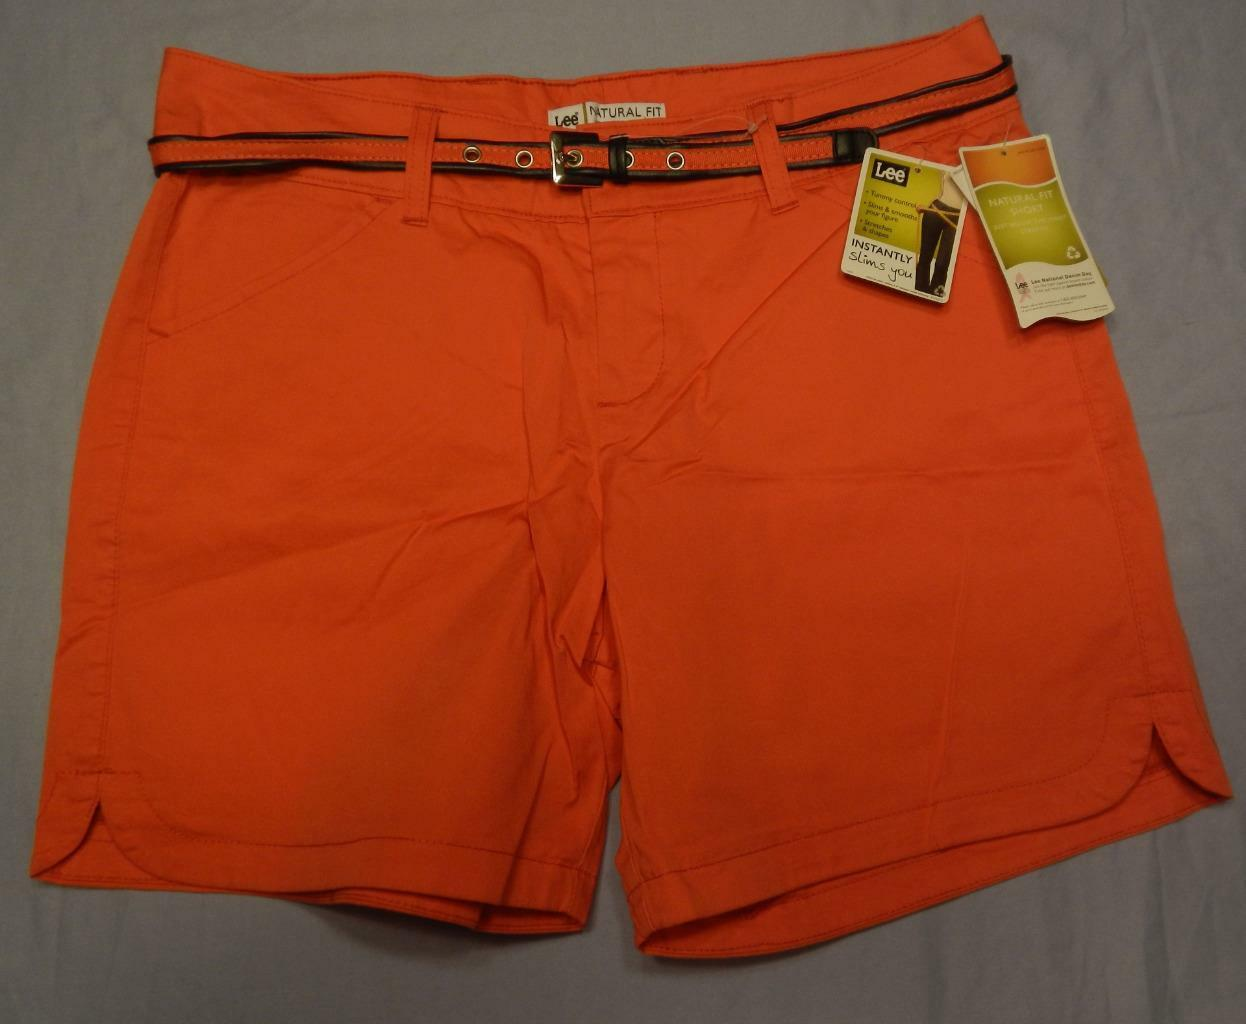 New Lee women's natural fit shorts size 8M with belt